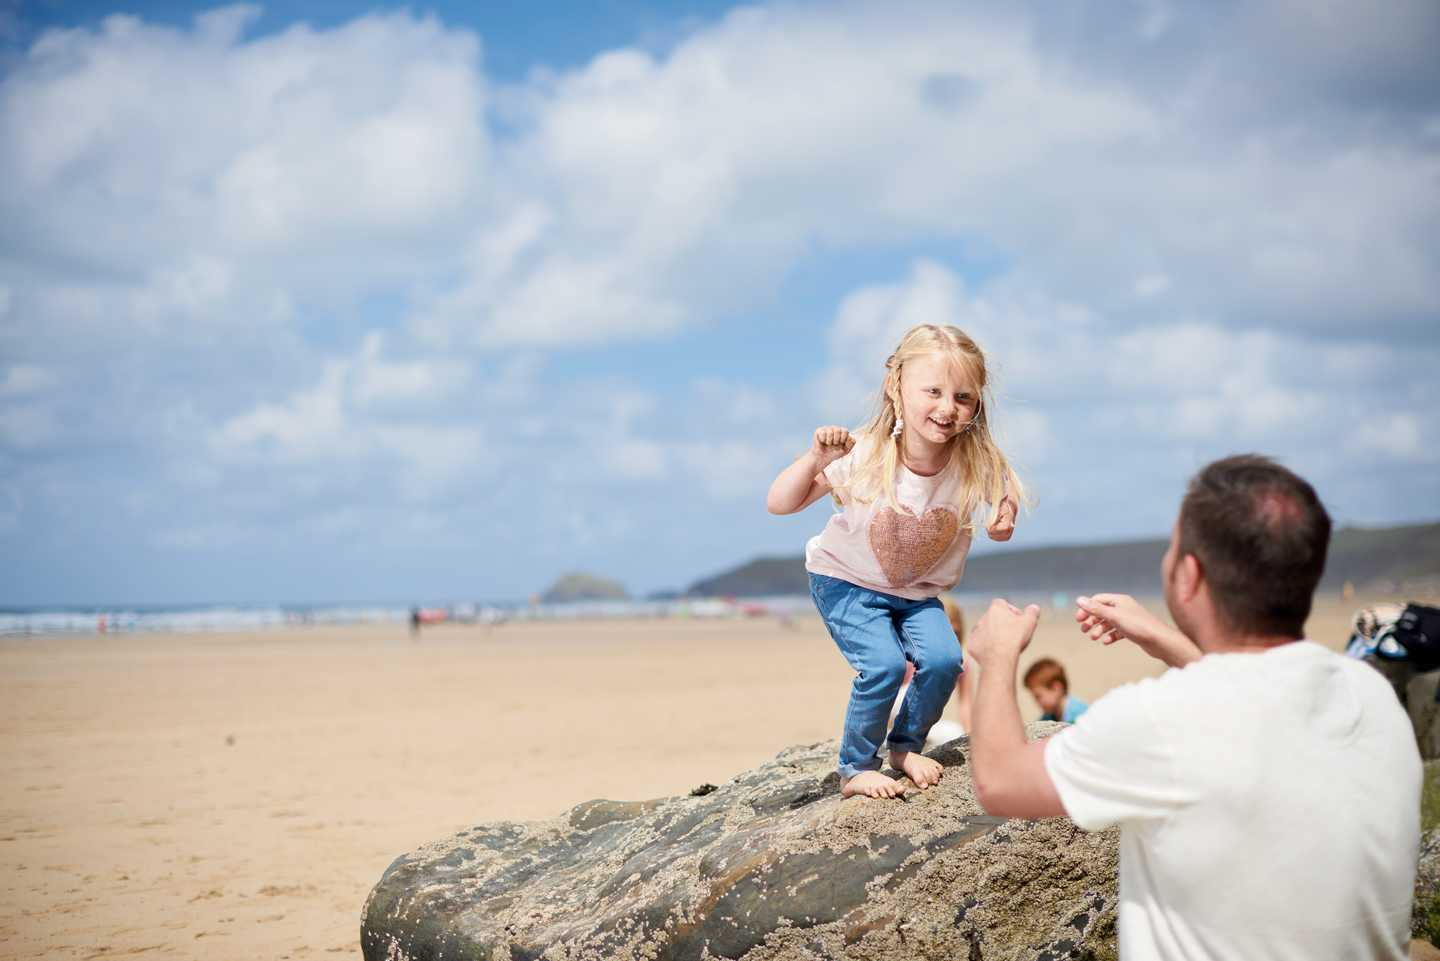 A girl jumping into her father's arms on the beach